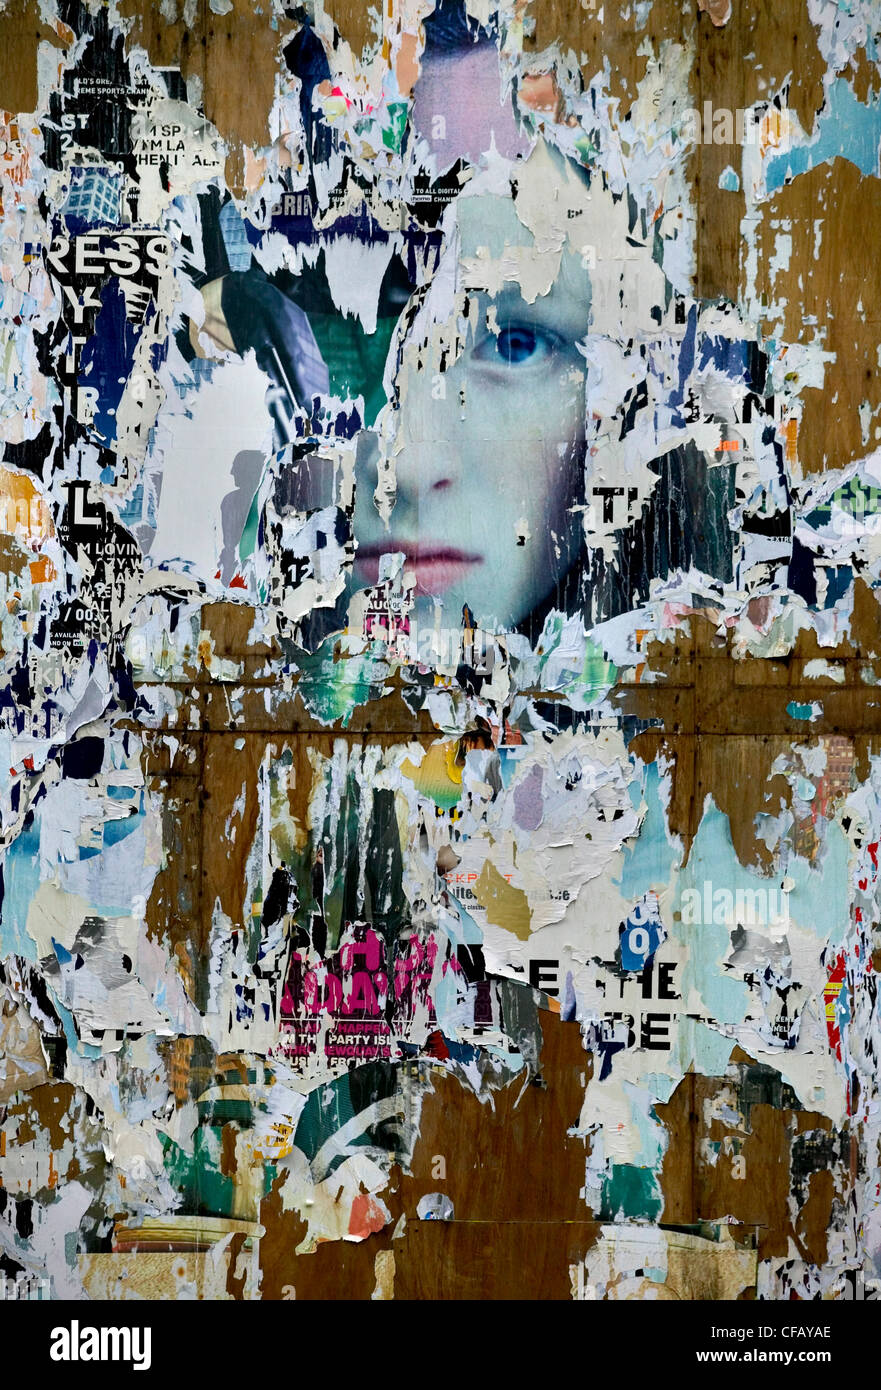 Torn poster with woman's face, London, UK. - Stock Image